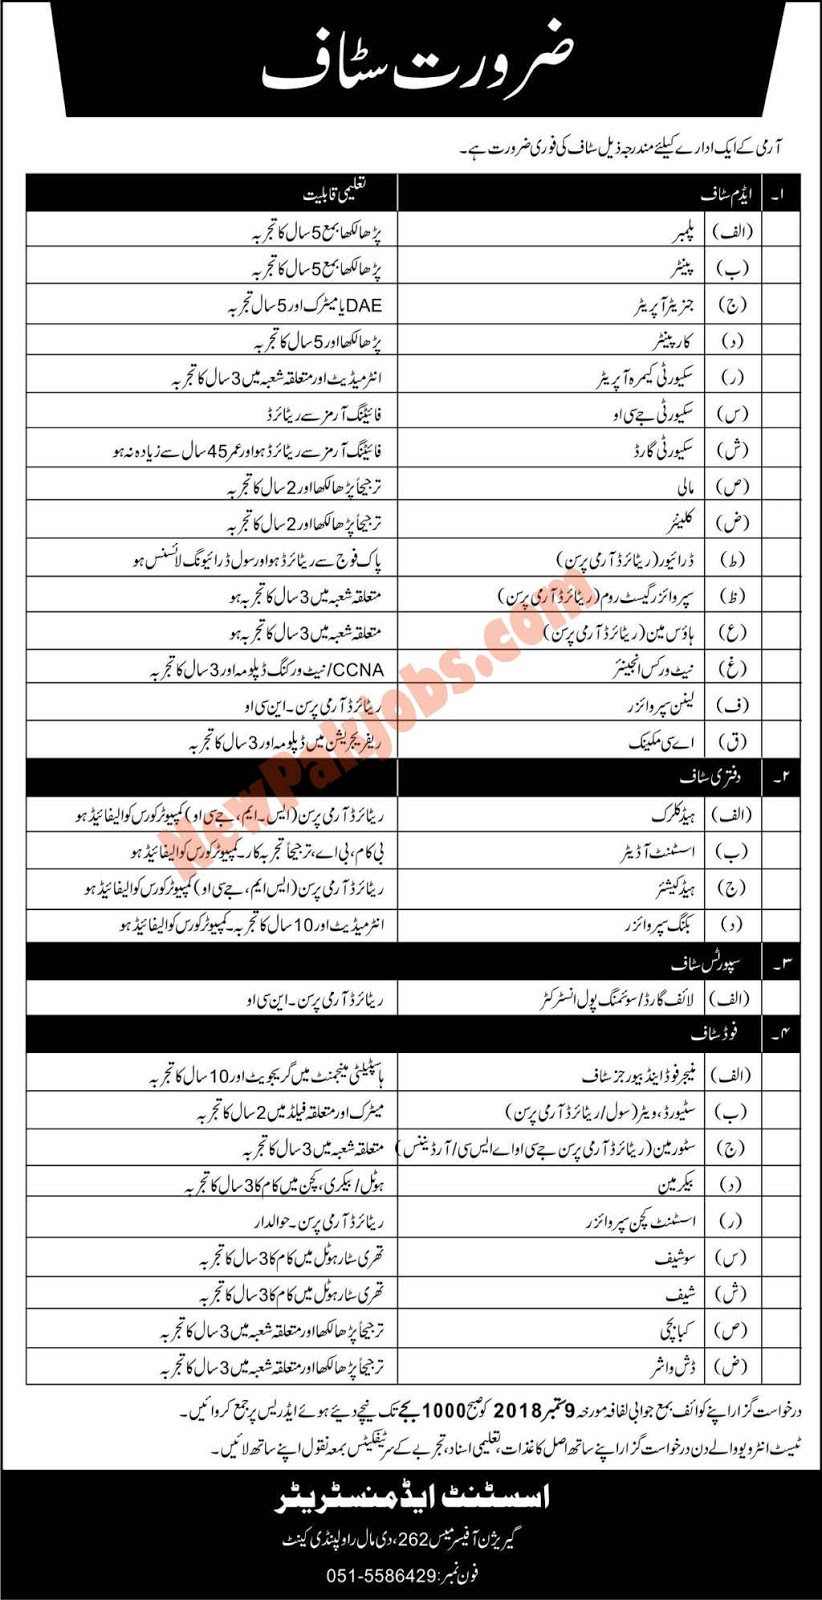 Pakistan Army Rawalpindi 29 Latest Vacancies